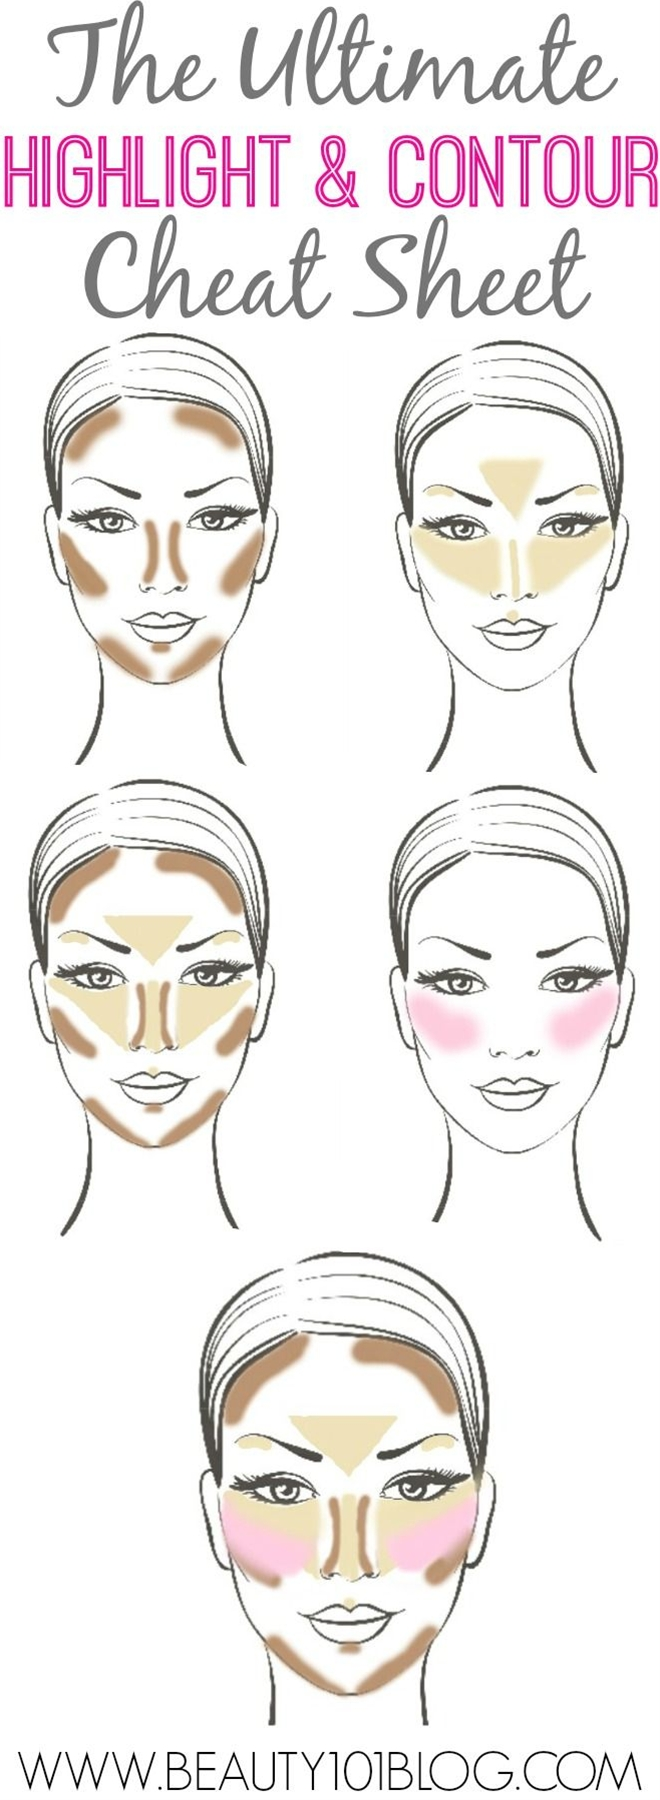 The EASIEST and most comprehensive contouring and highlighting guide on the internet!